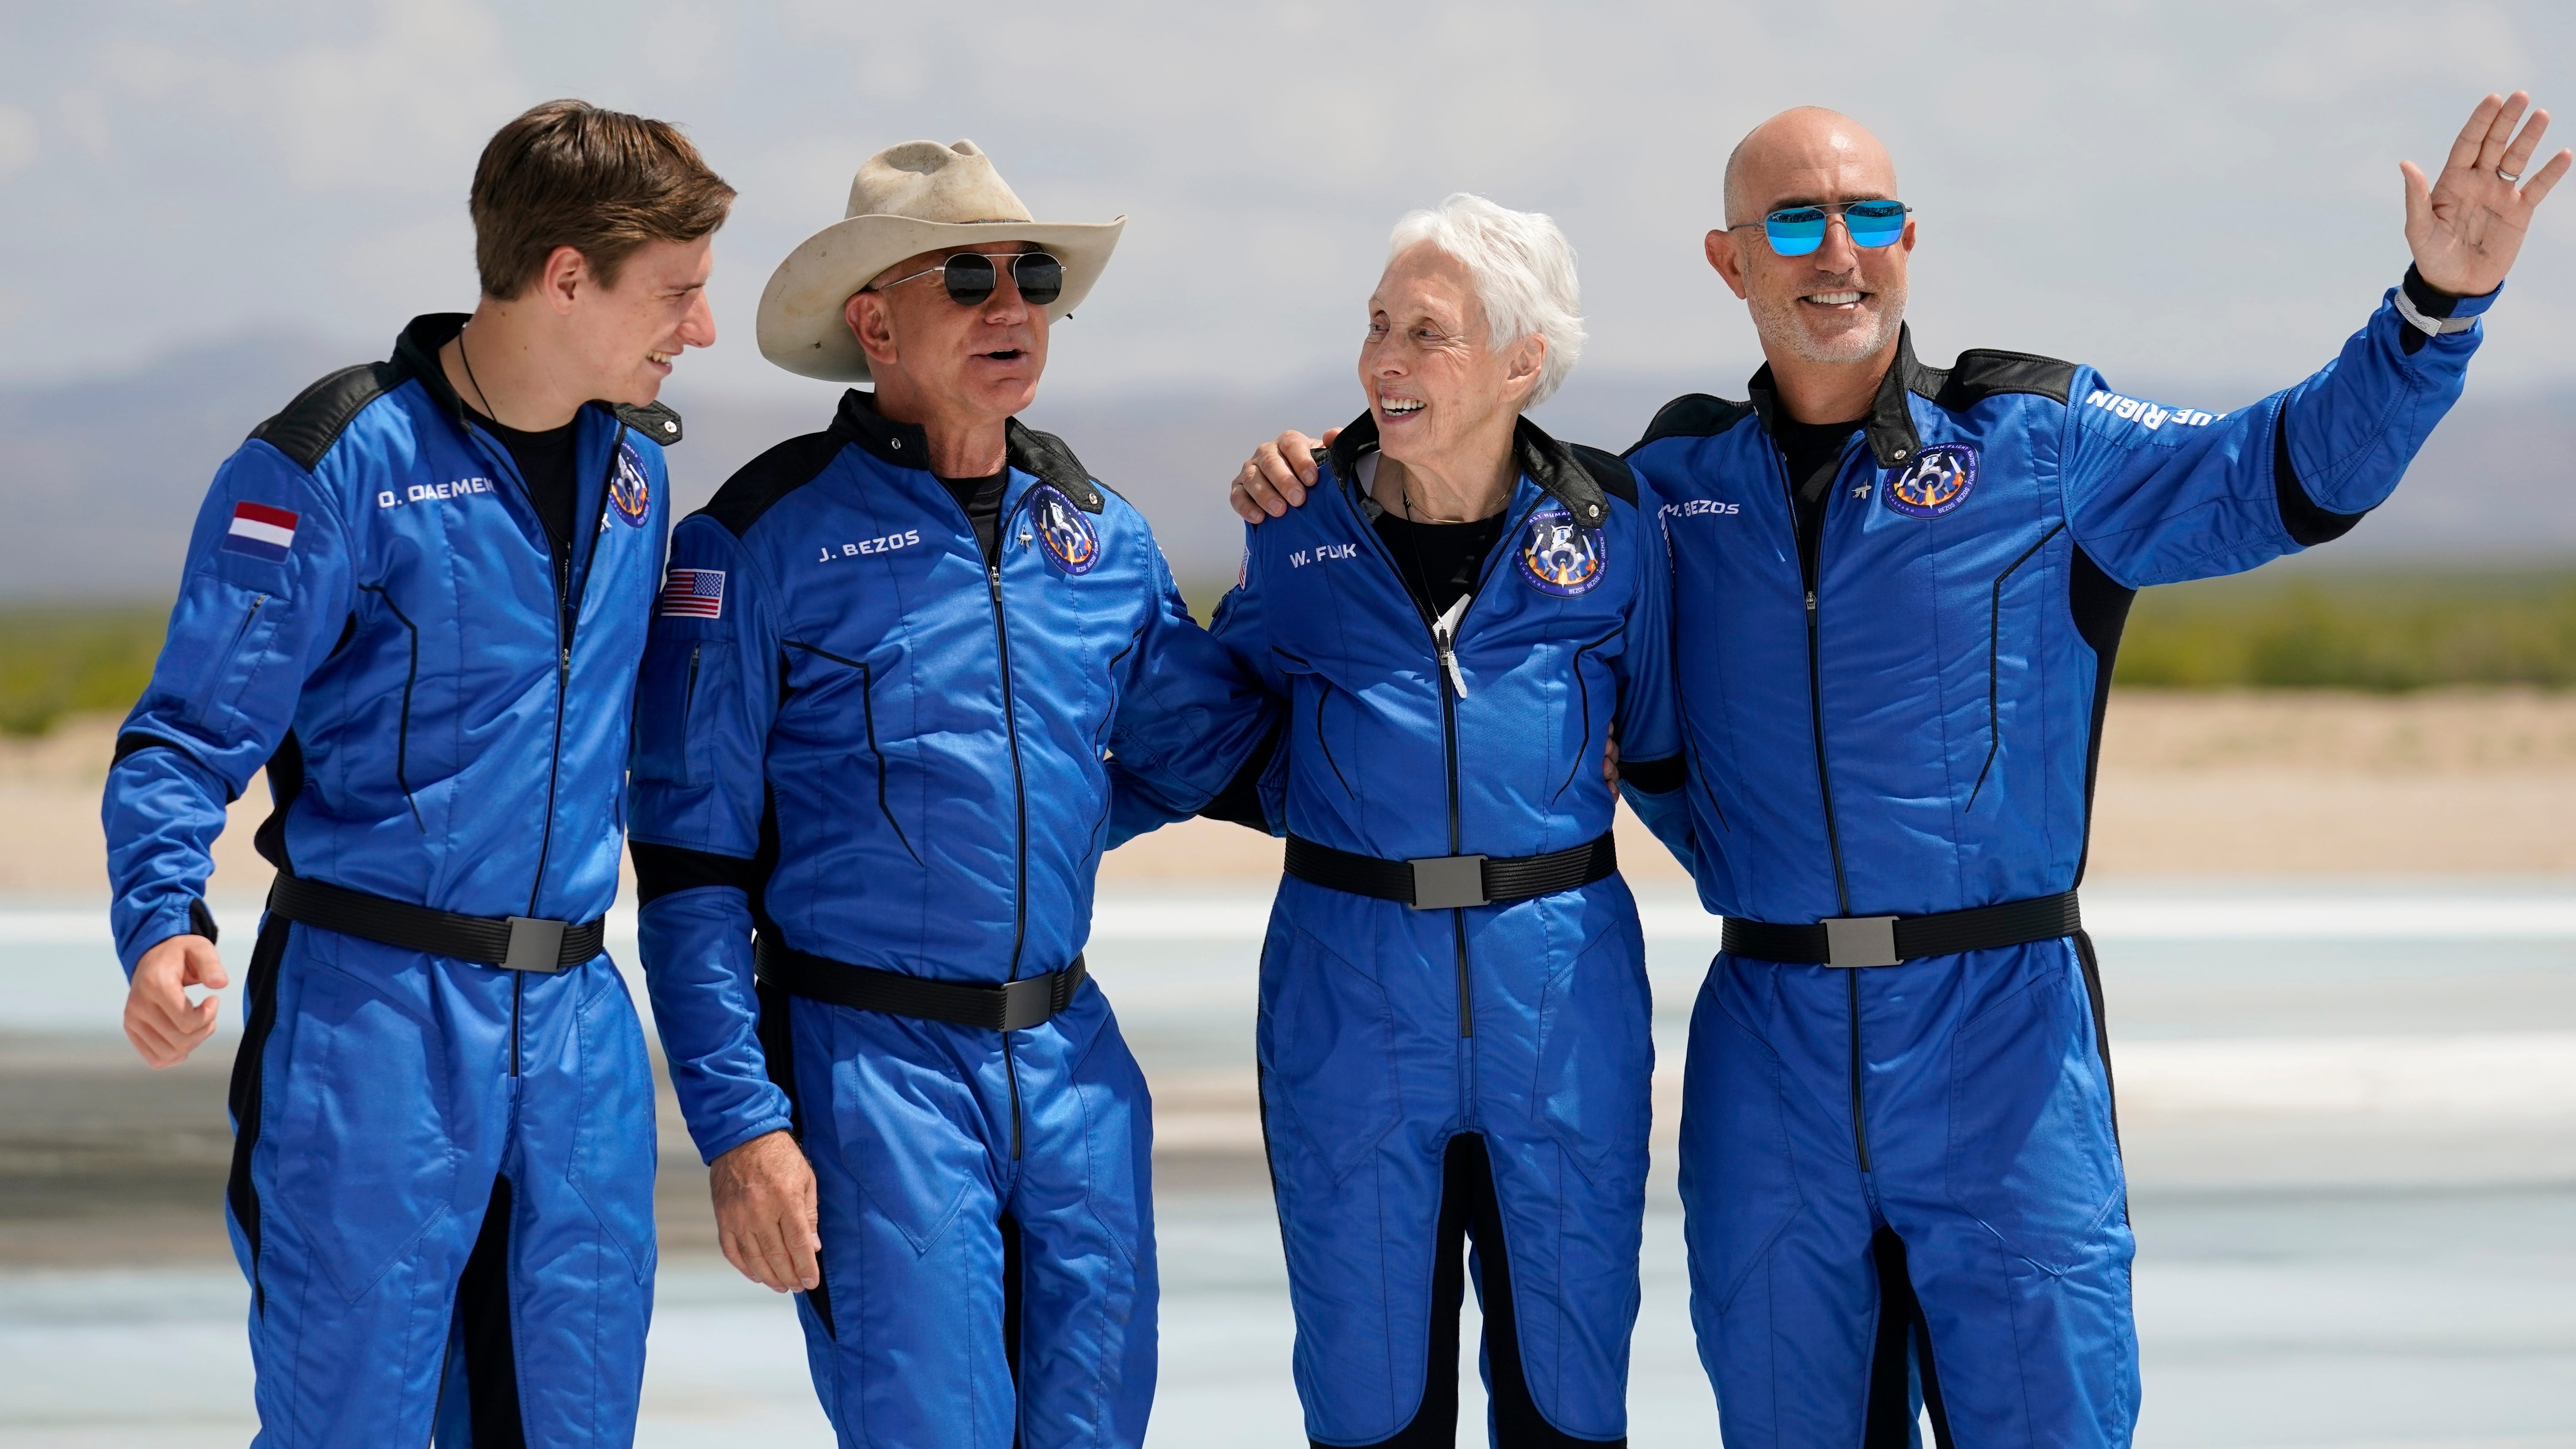 Jeff Bezos blasts into space on own rocket: 'Best day ever!'